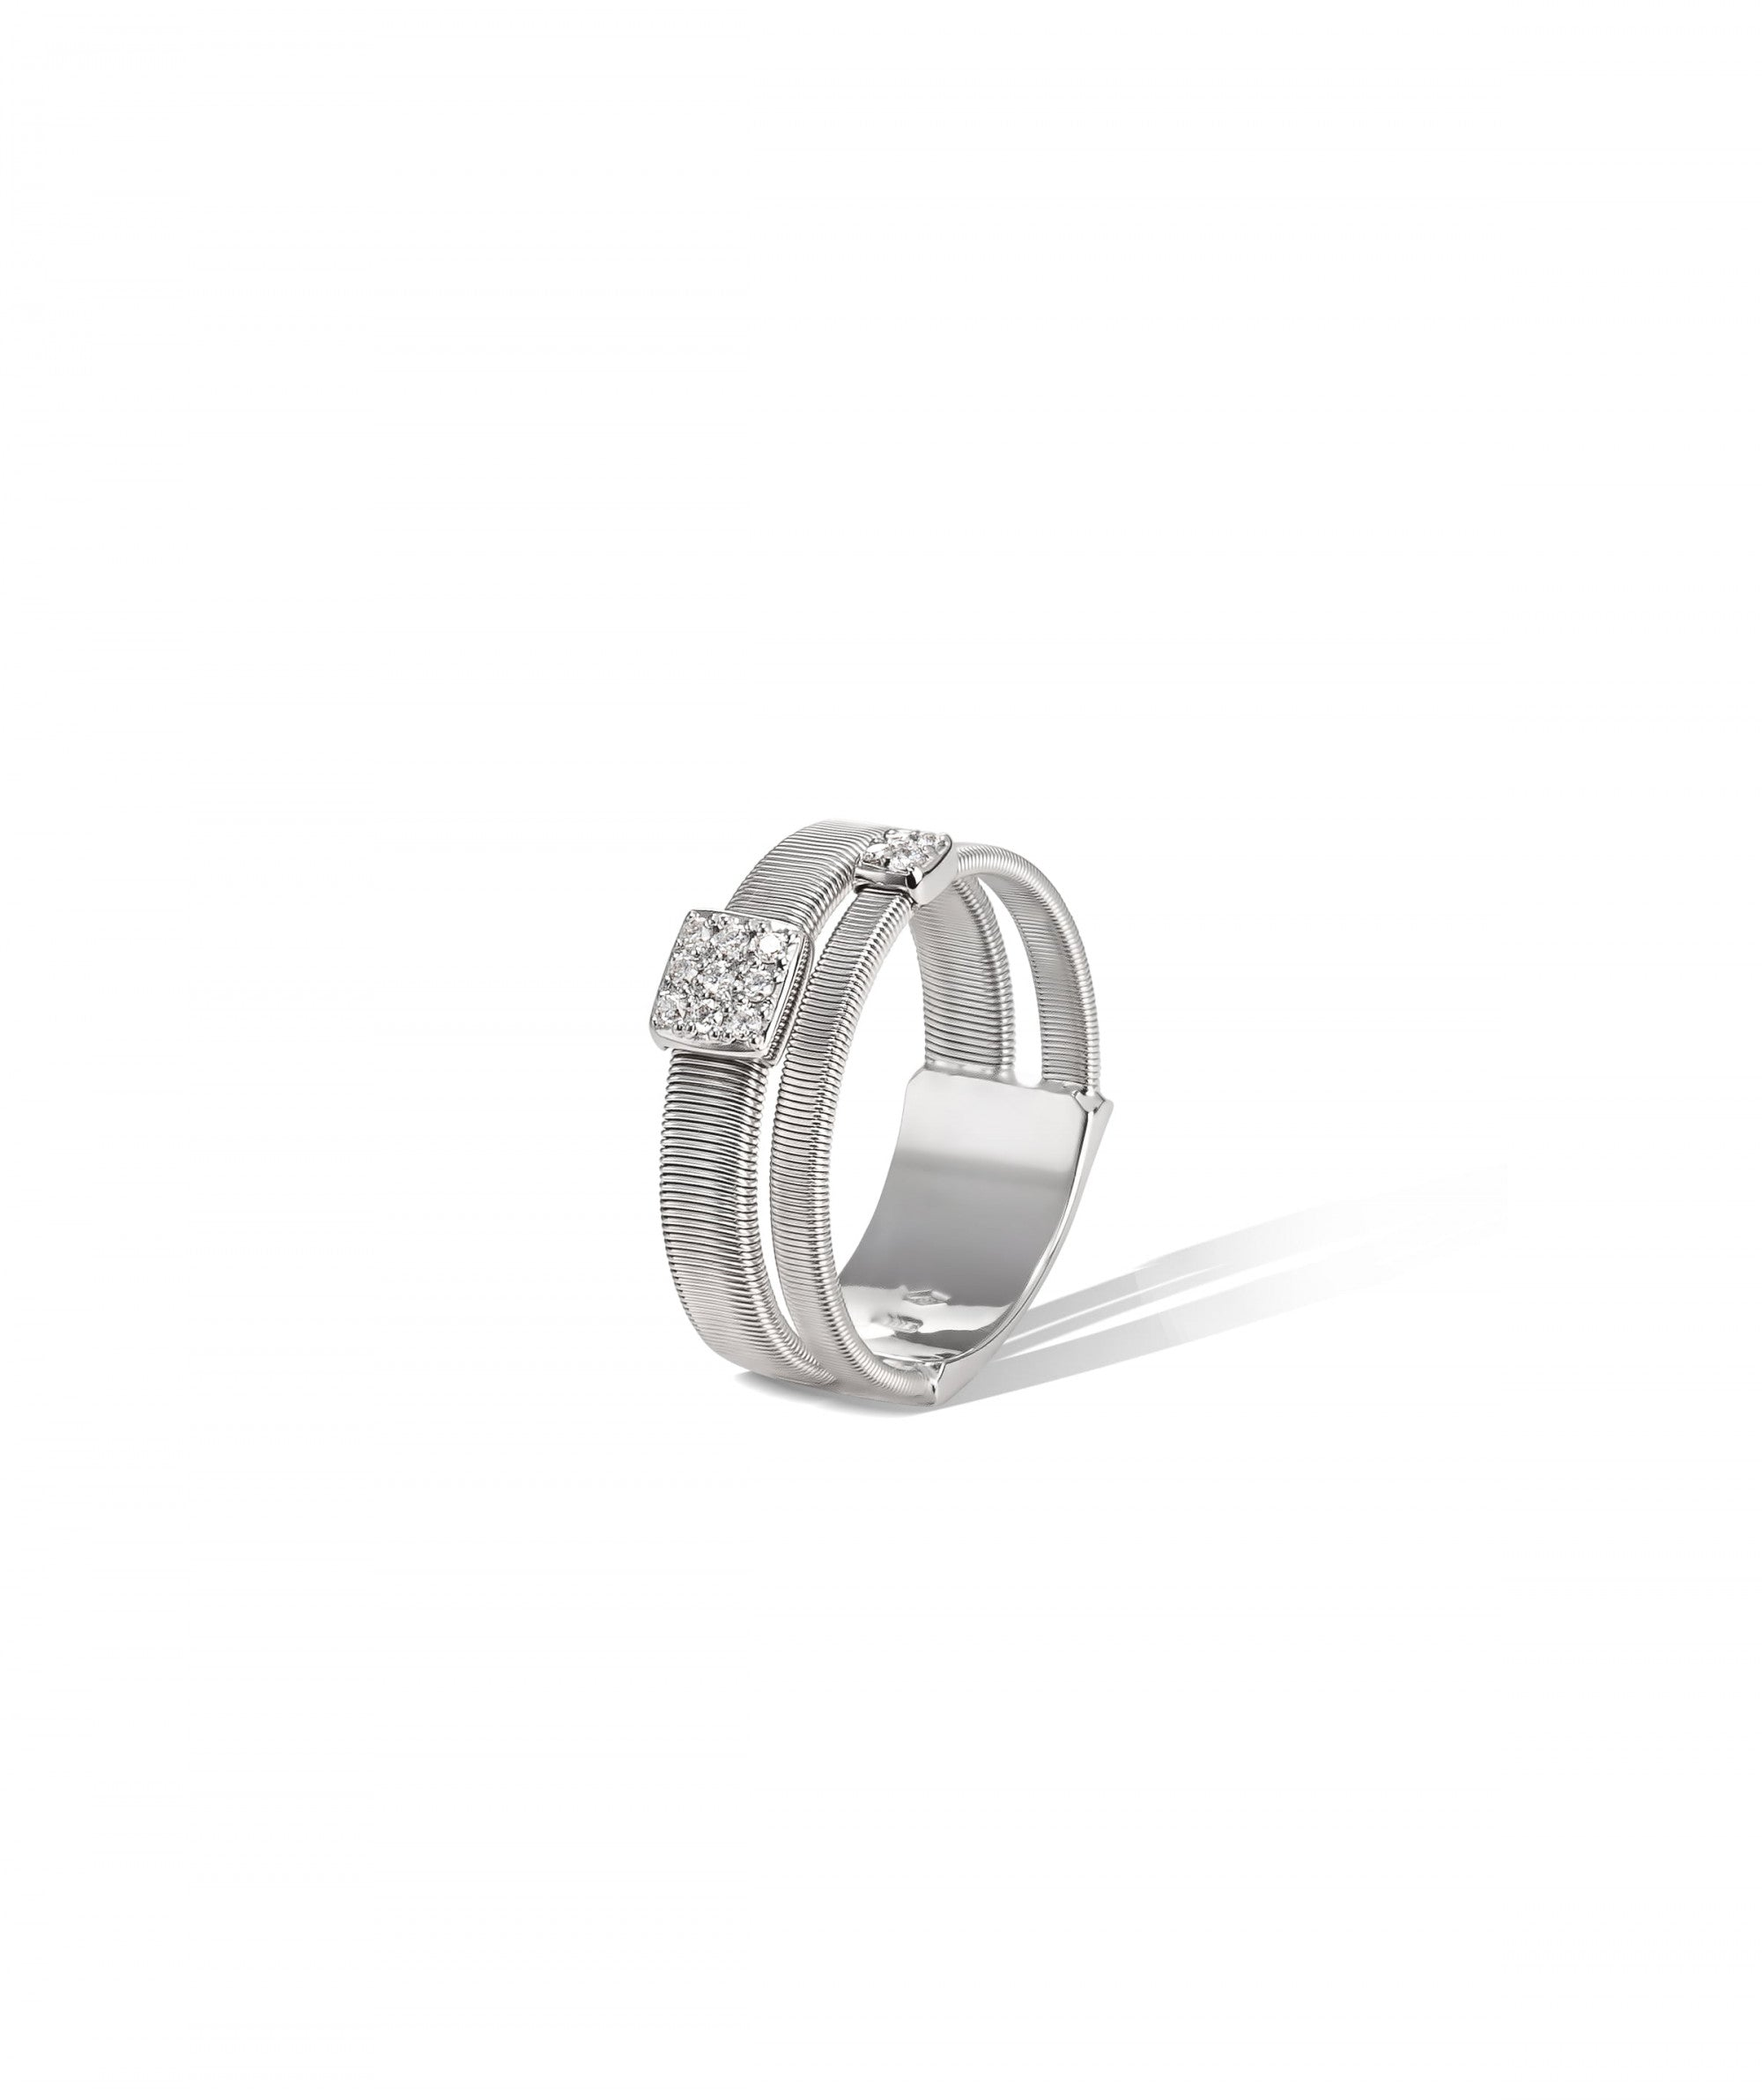 Masai Ring in 18k White Gold with Pave Diamonds Double Band - Orsini Jewellers NZ